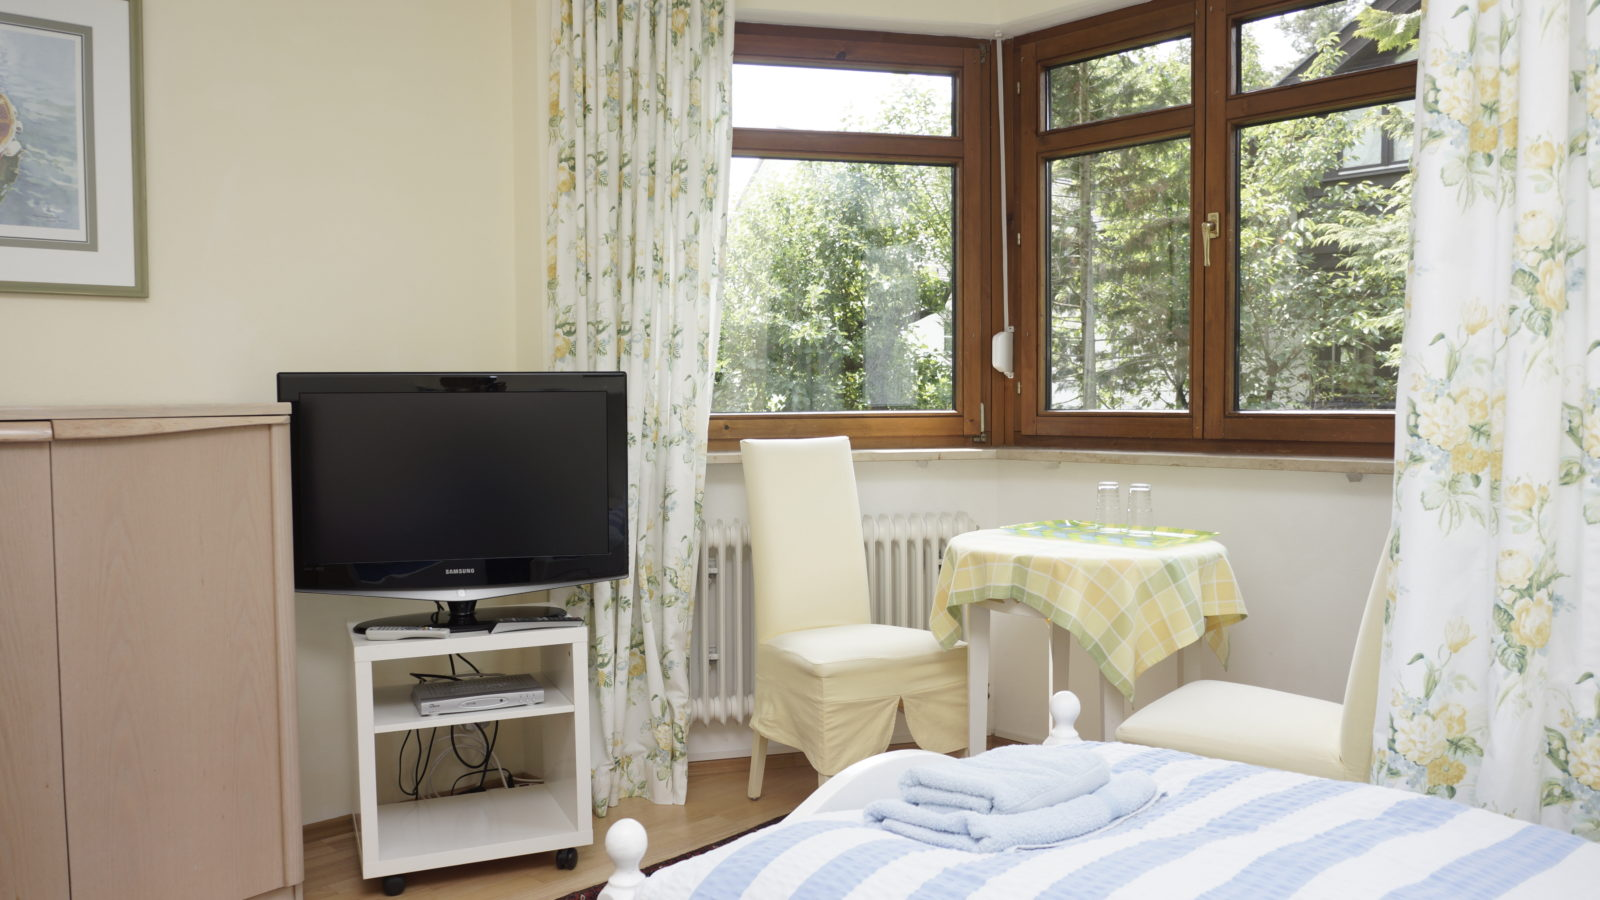 A small bay window with sitting area also ensures a pleasant stay